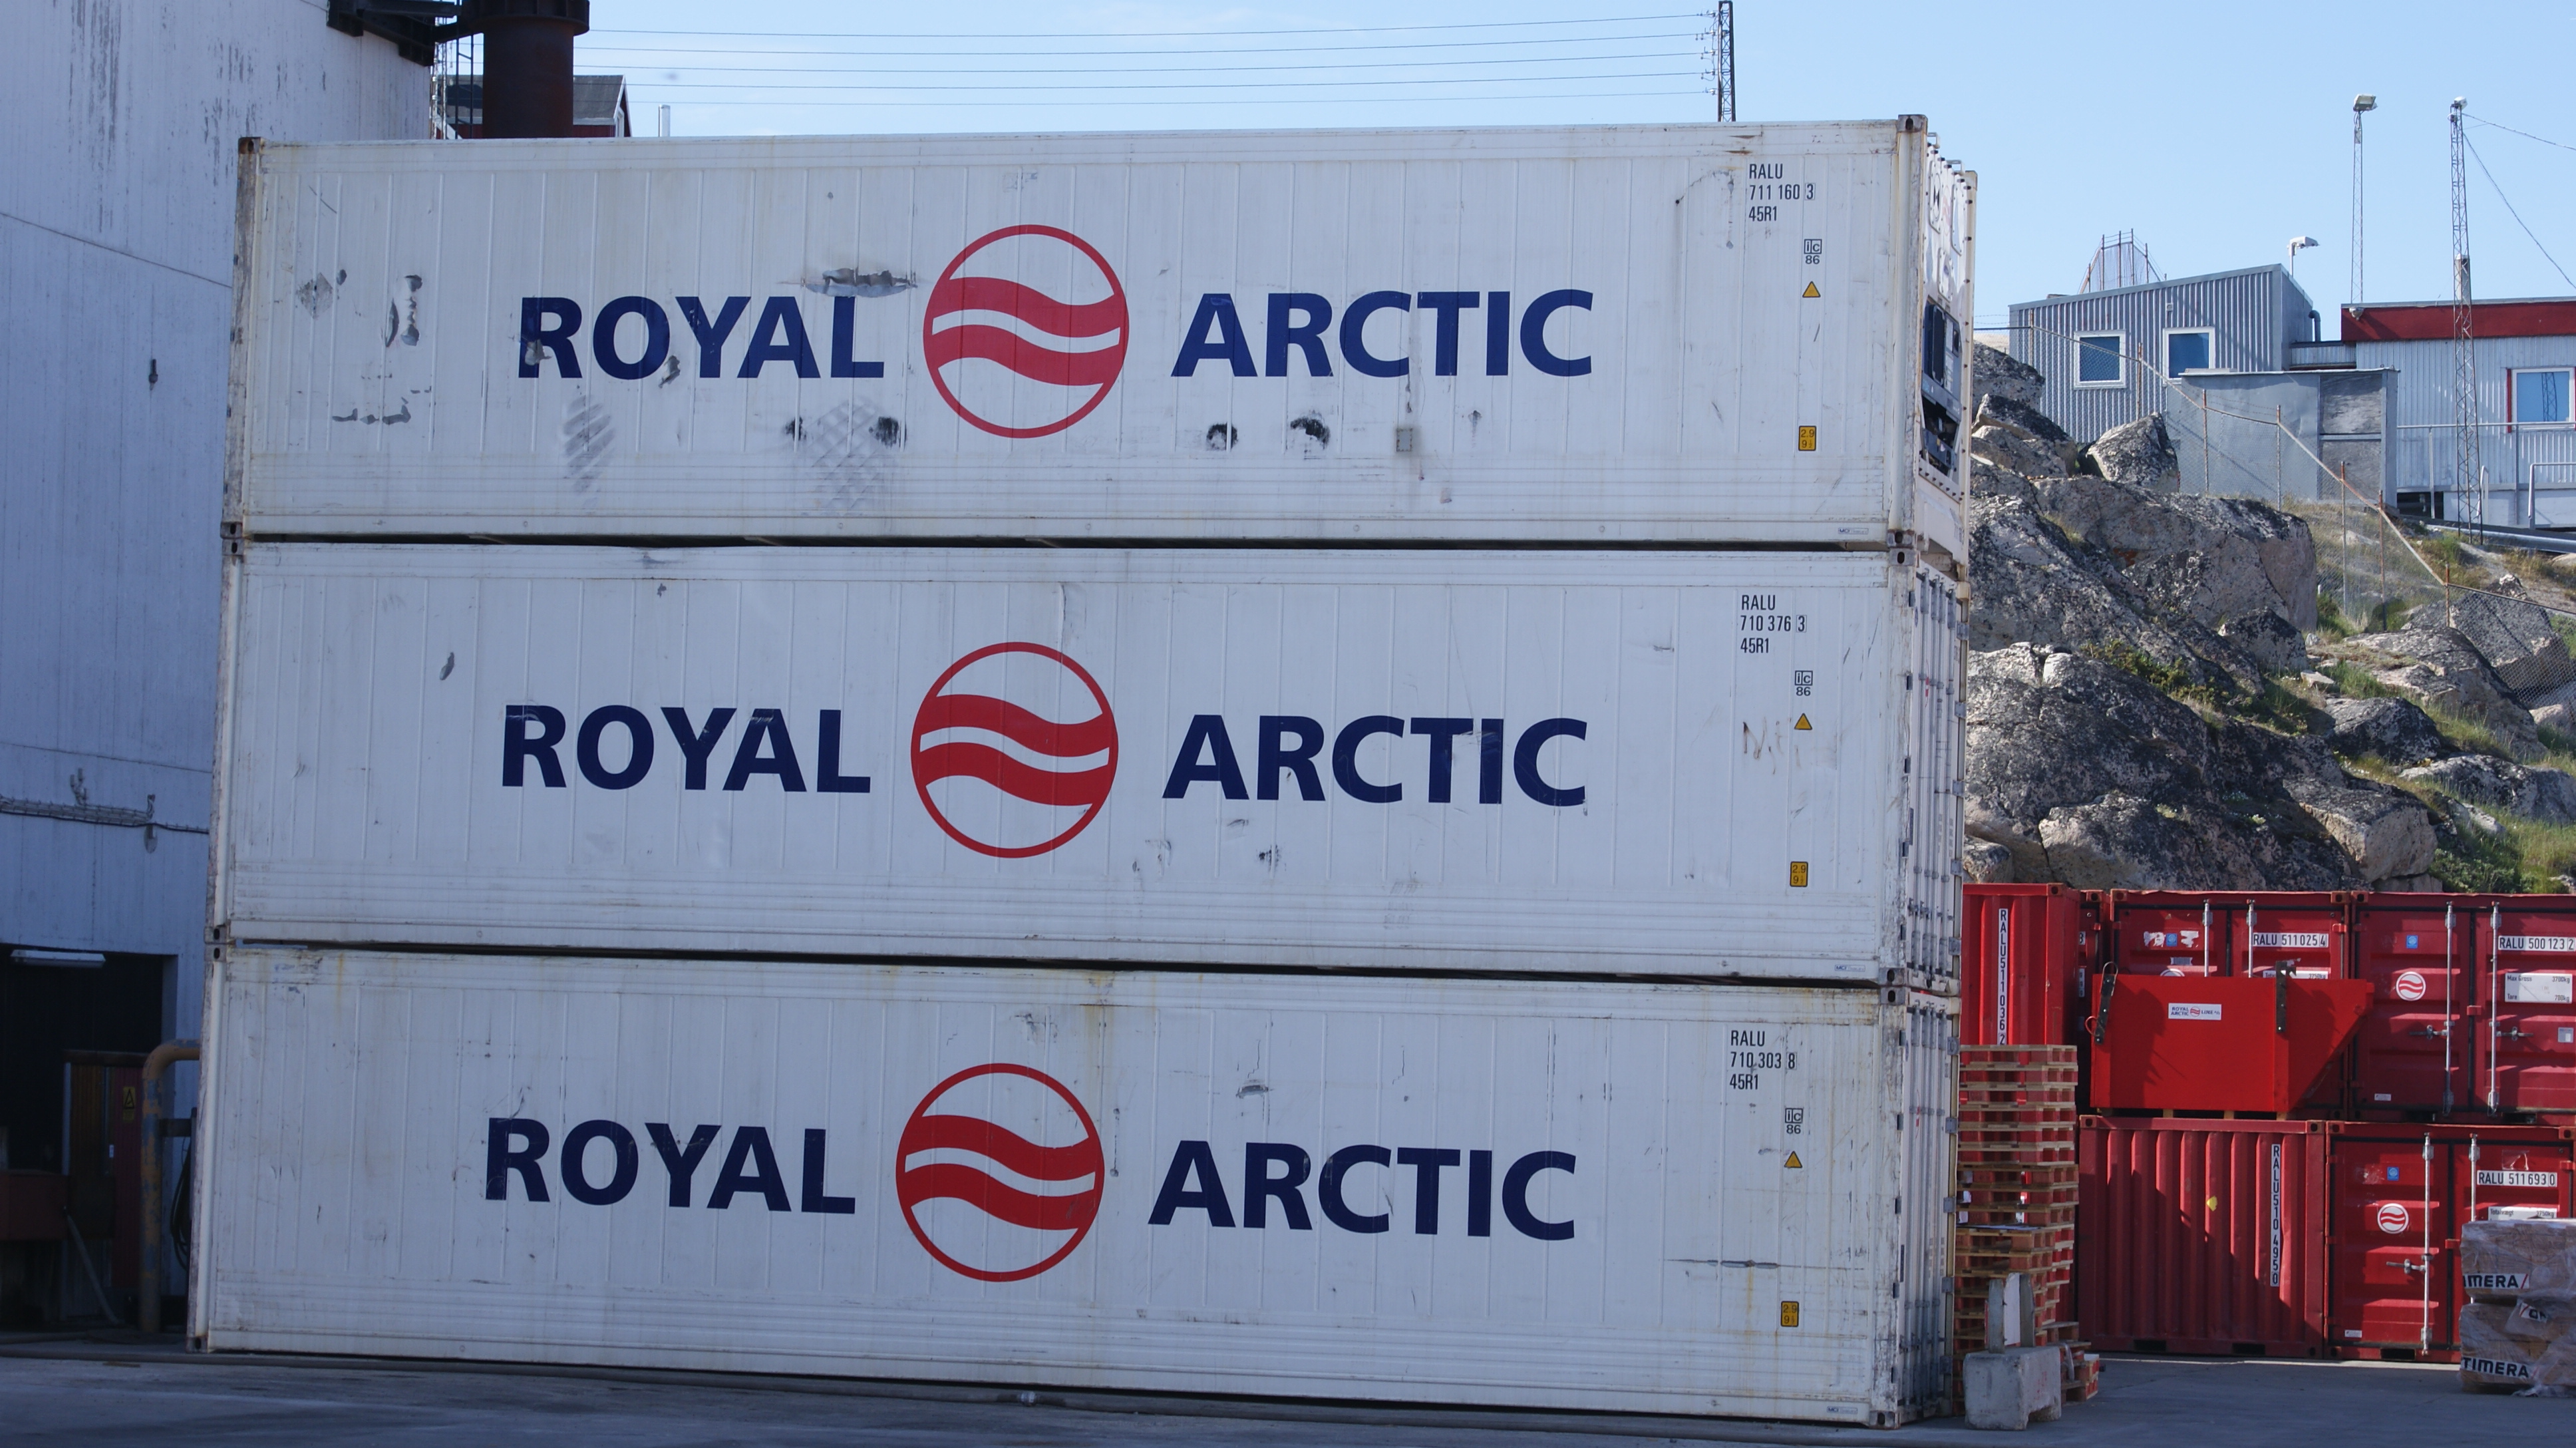 Arctic Line : File royal arctic containers ilulissat port g wikimedia commons